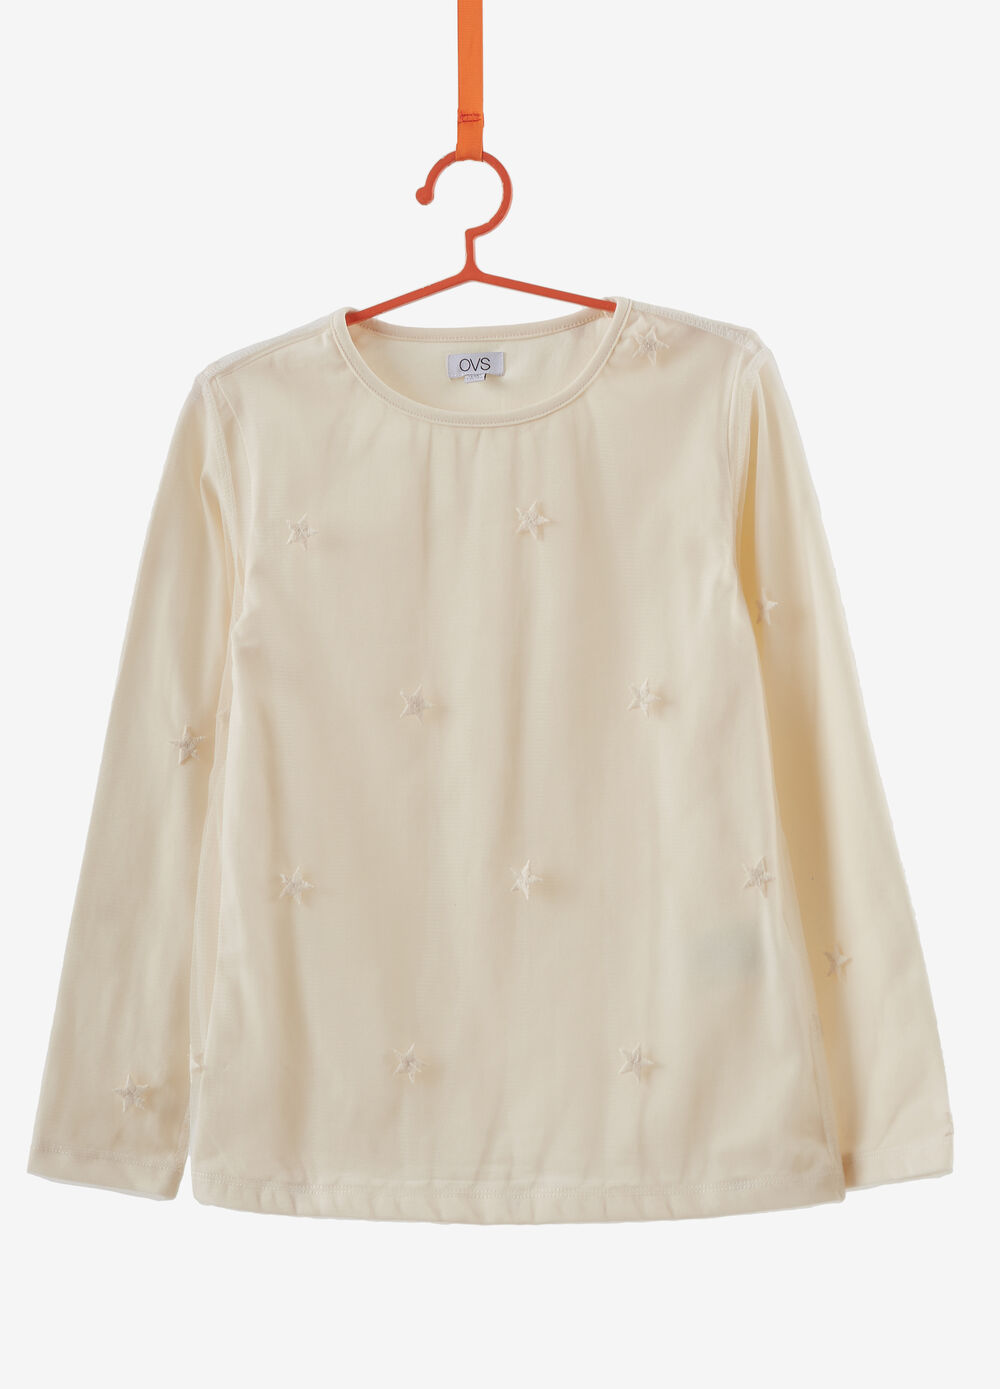 Faux layered stretch cotton T-shirt